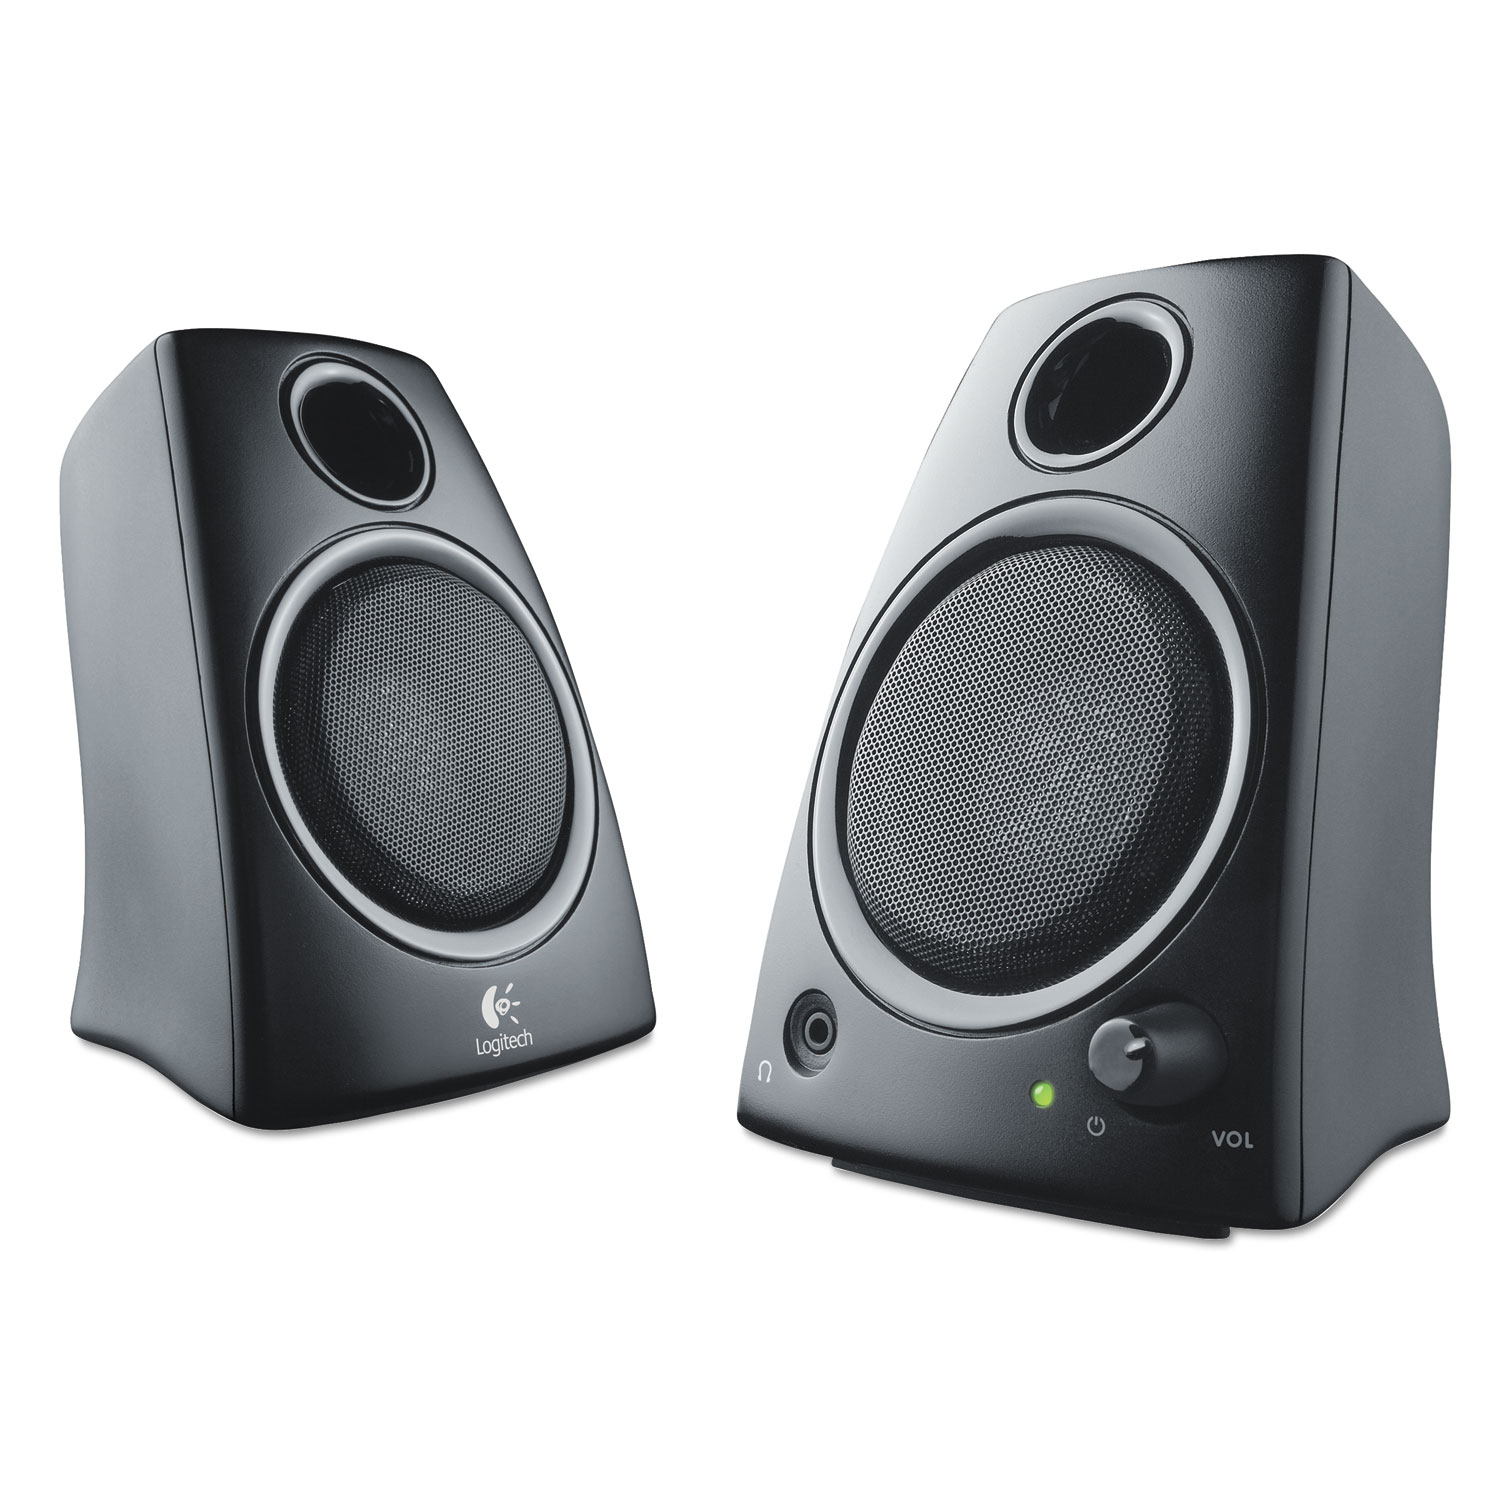 Z130 Compact 2 0 Stereo Speakers, 3 5mm Jack, Black